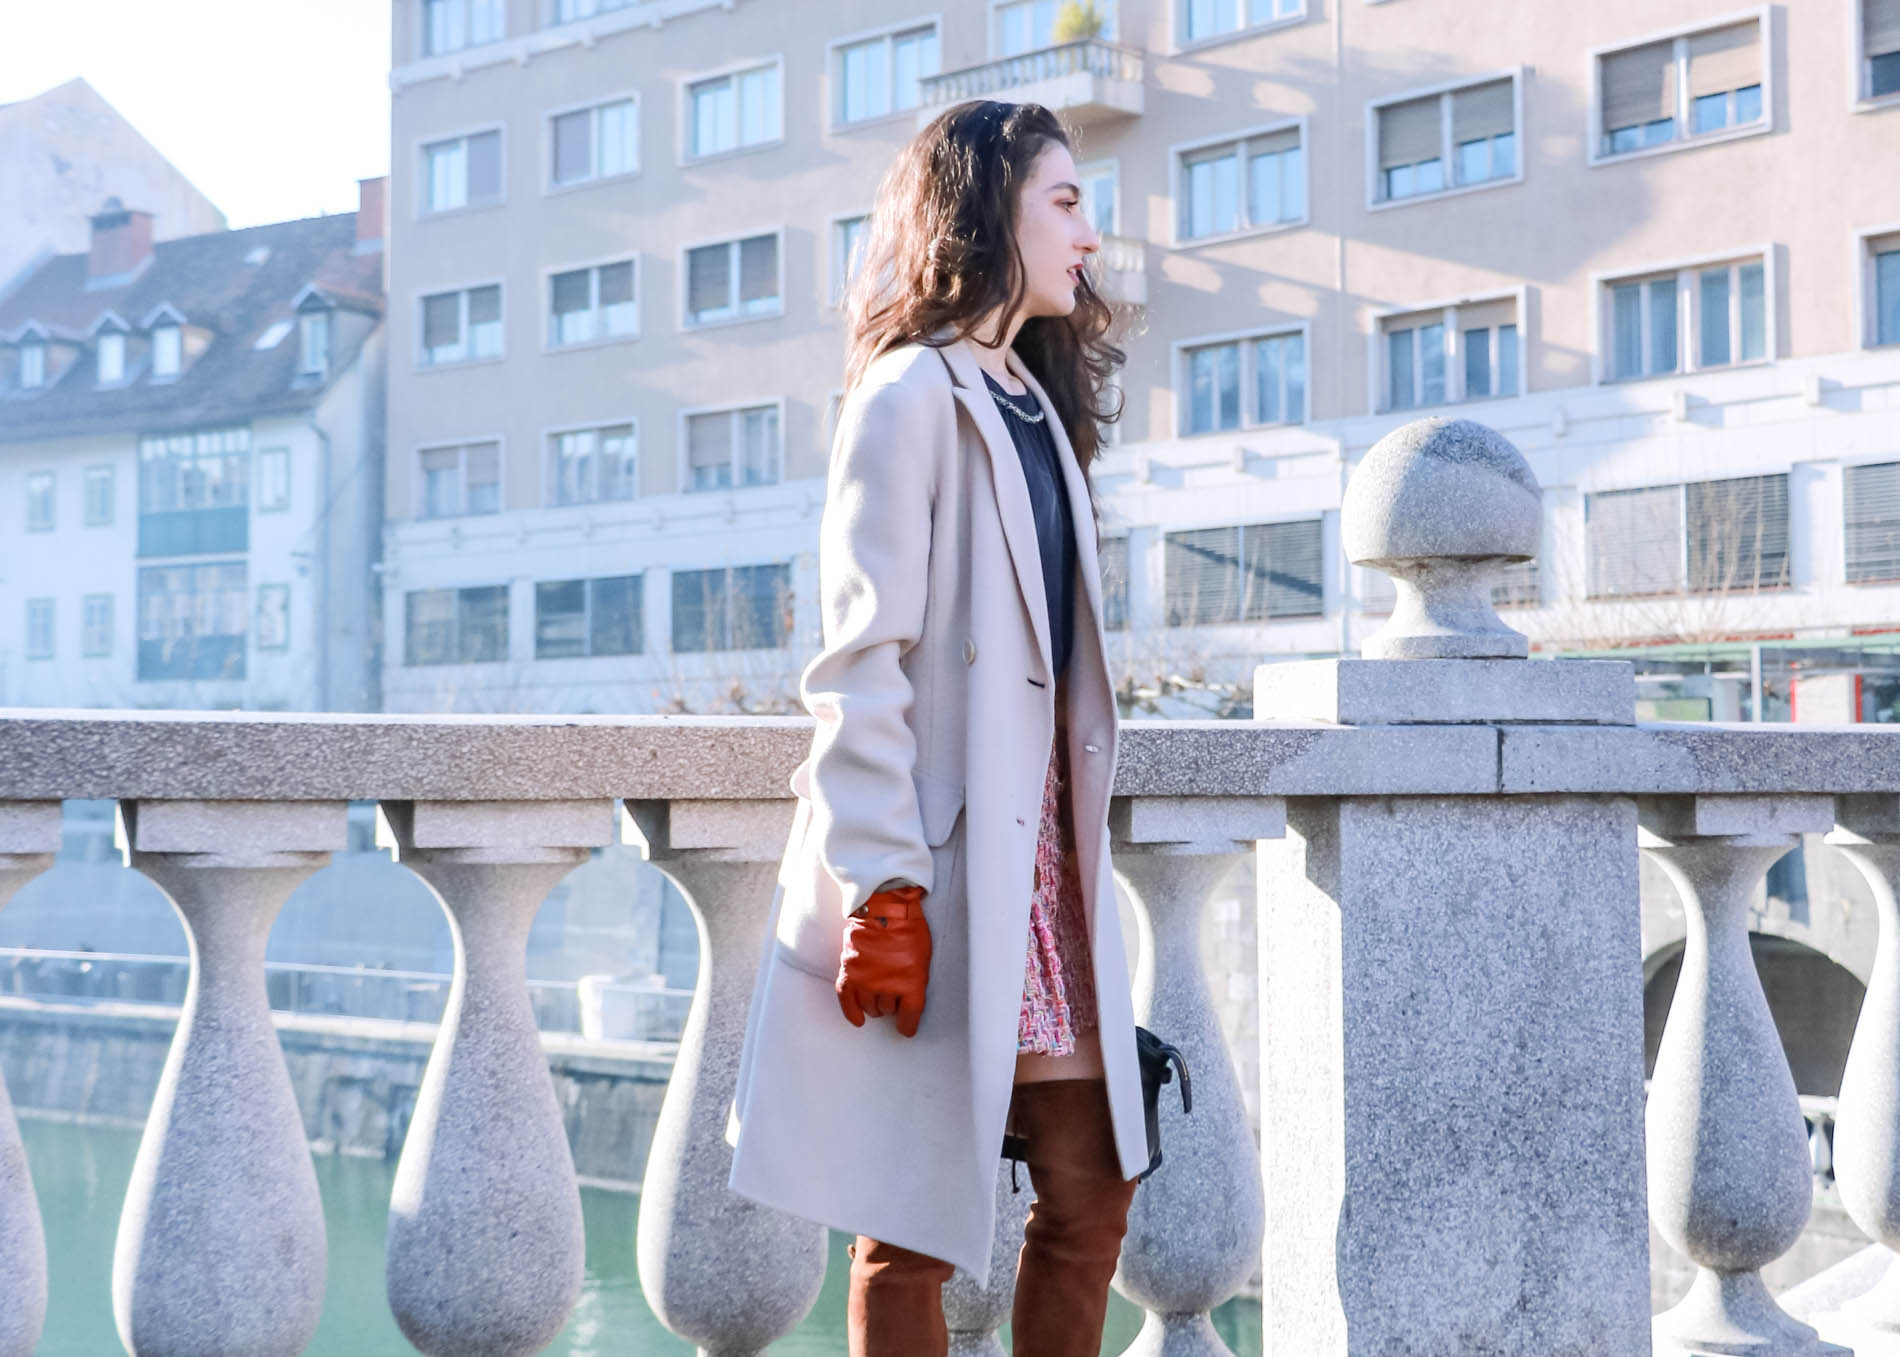 Fashion Blogger Veronika Lipar of Brunette from Wall Street sharing how to make New Year's resolutions come true